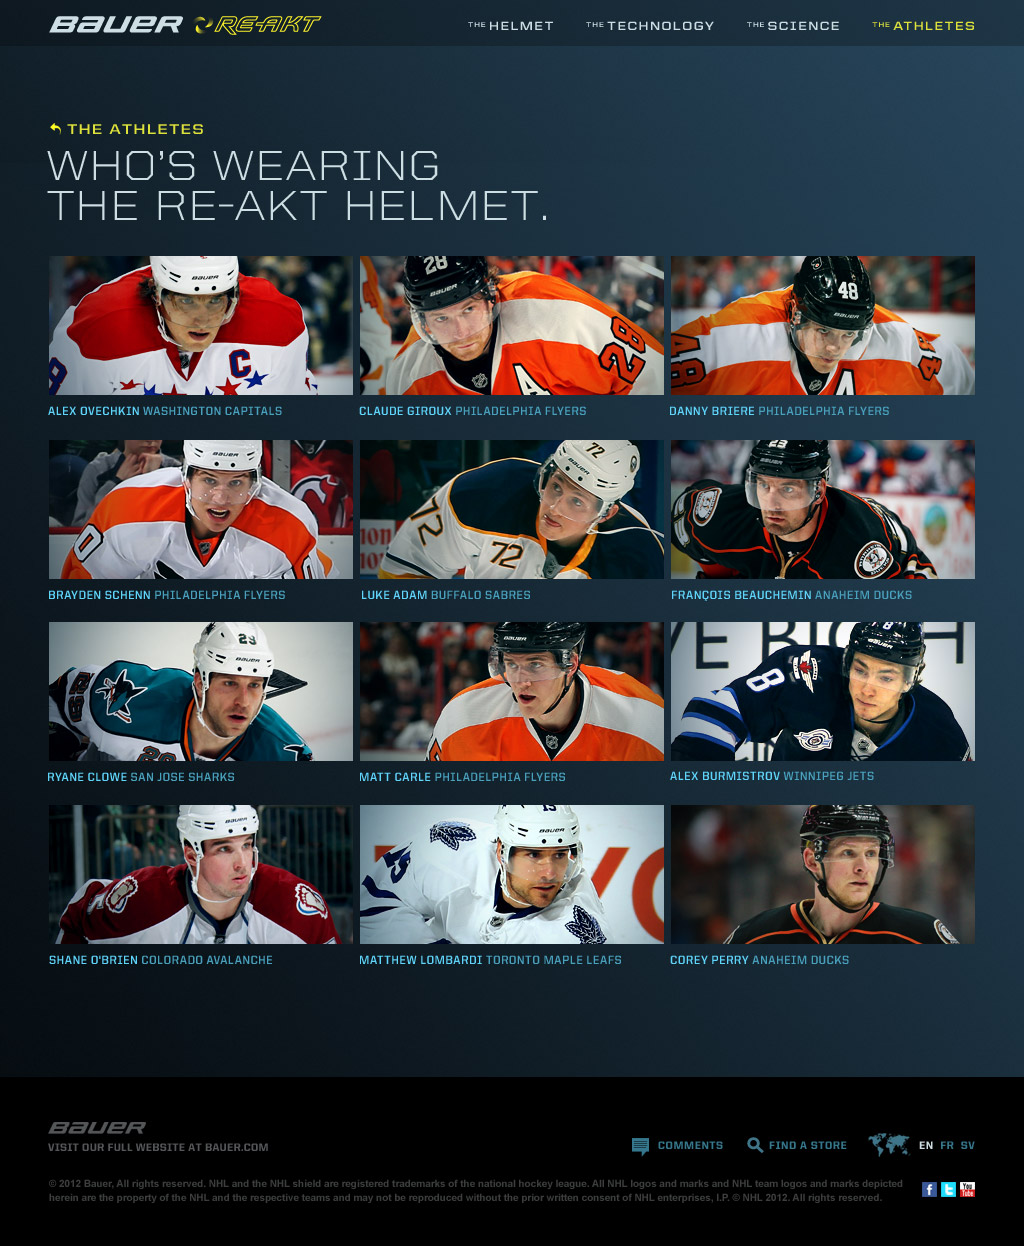 RE-AKT Microsite - Who's Wearing The Helmet